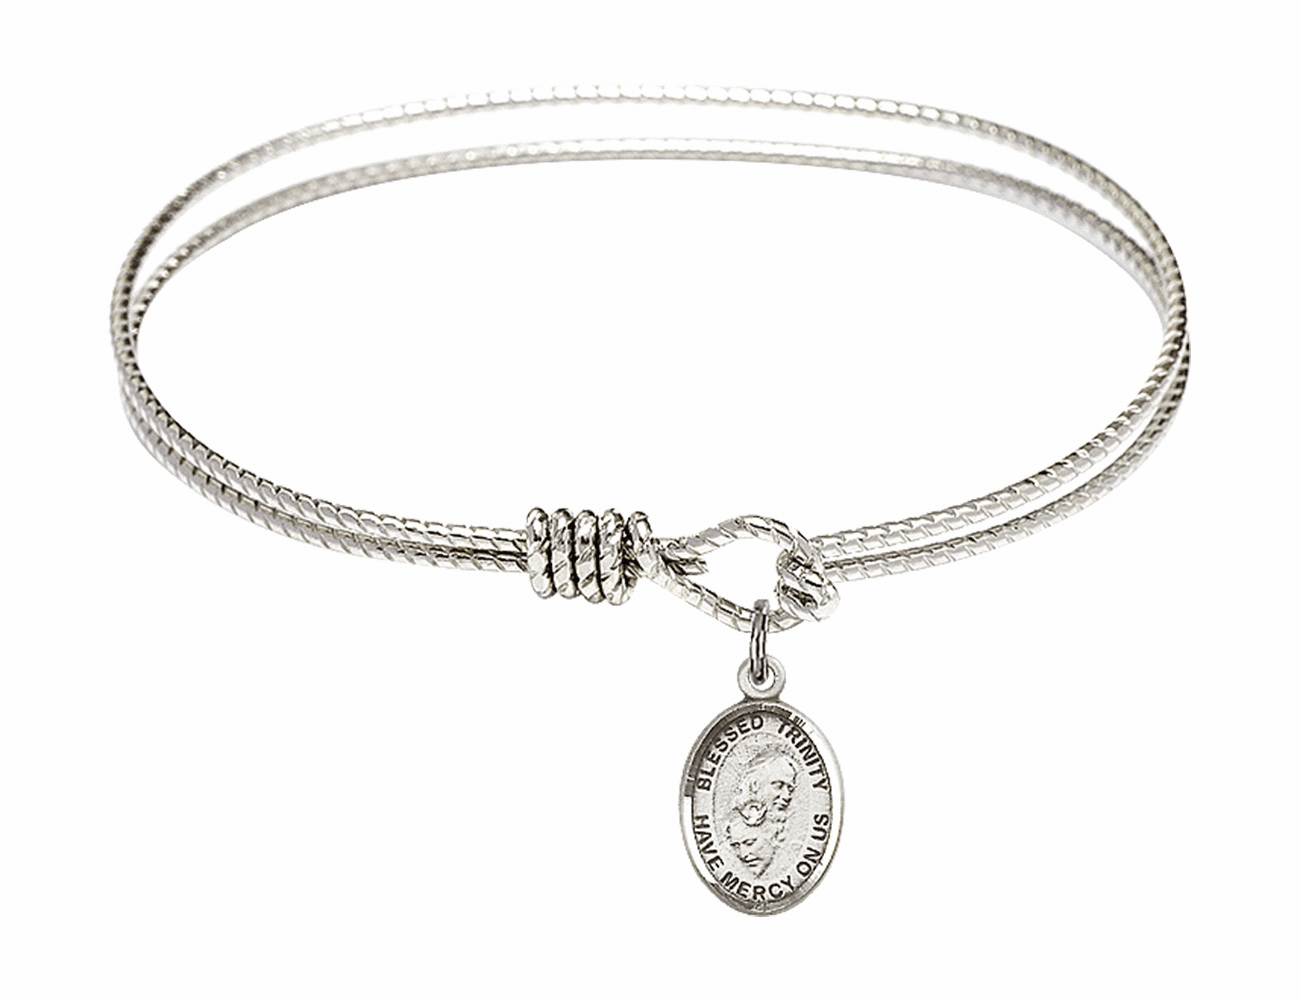 Twisted Holy Trinity Bangle Sterling Silver Charm Bracelet by Bliss